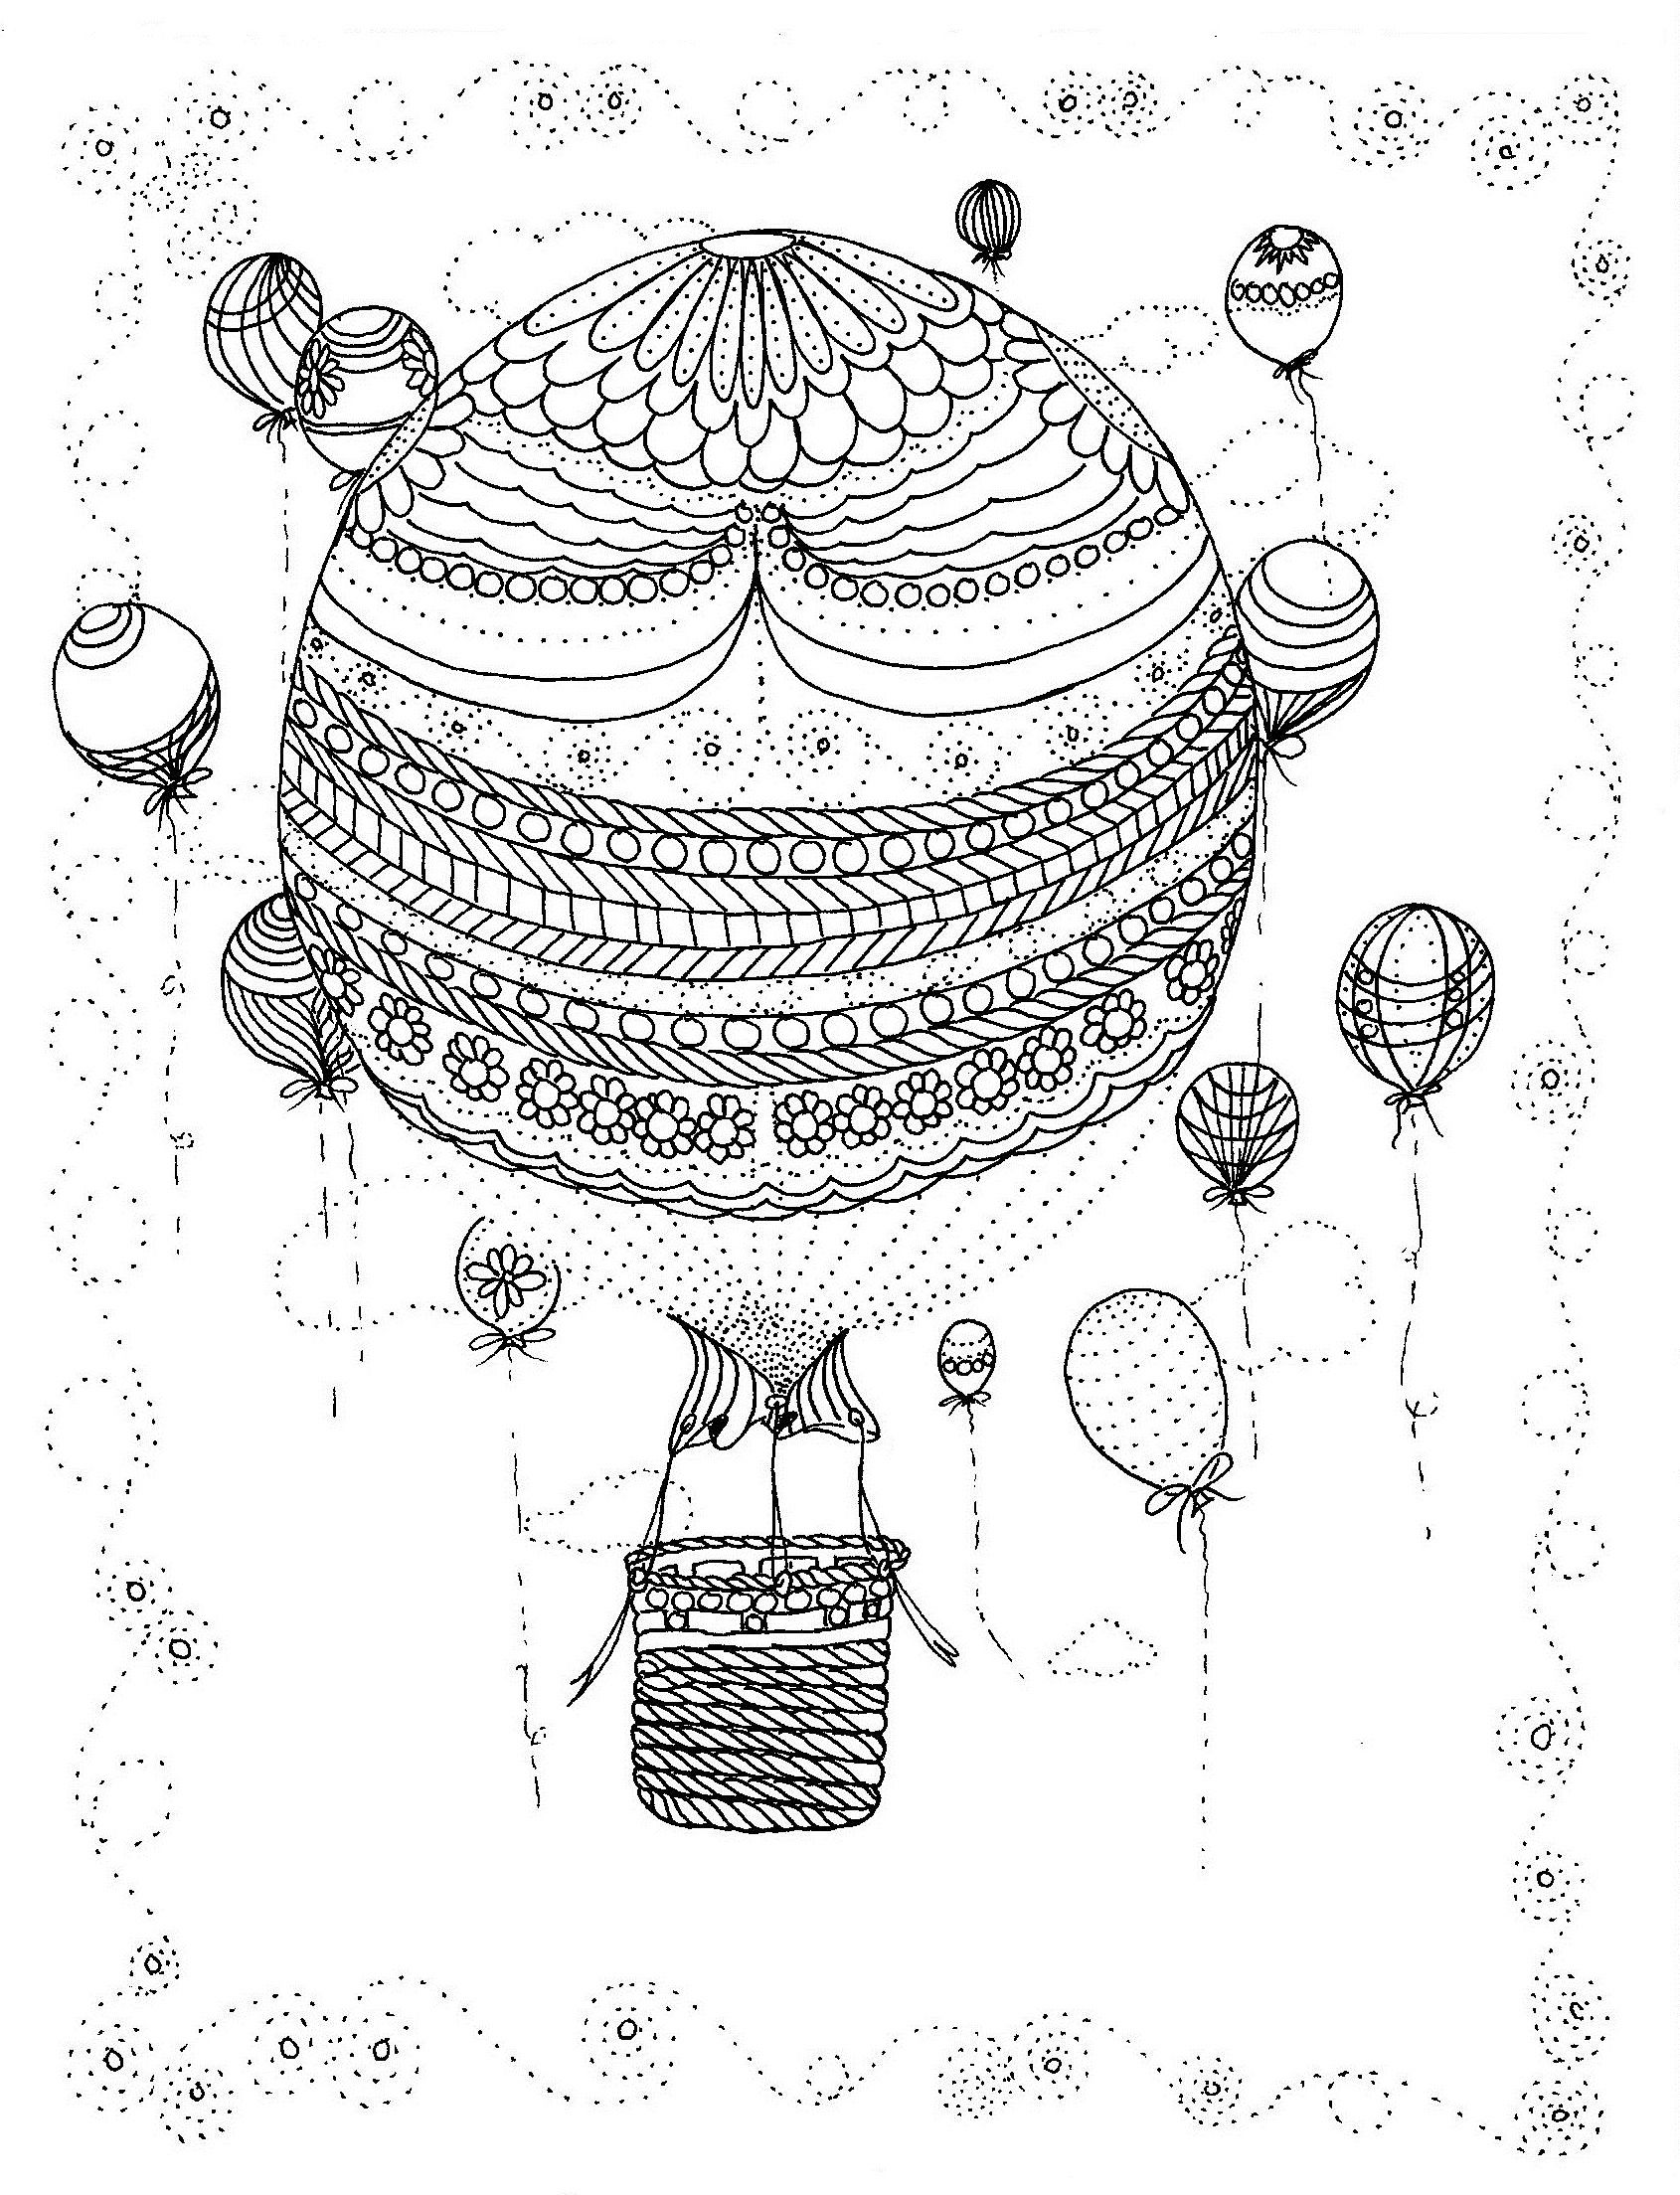 Hot Air Balloon Coloring Page | Hot air balloons, Air balloon and ...